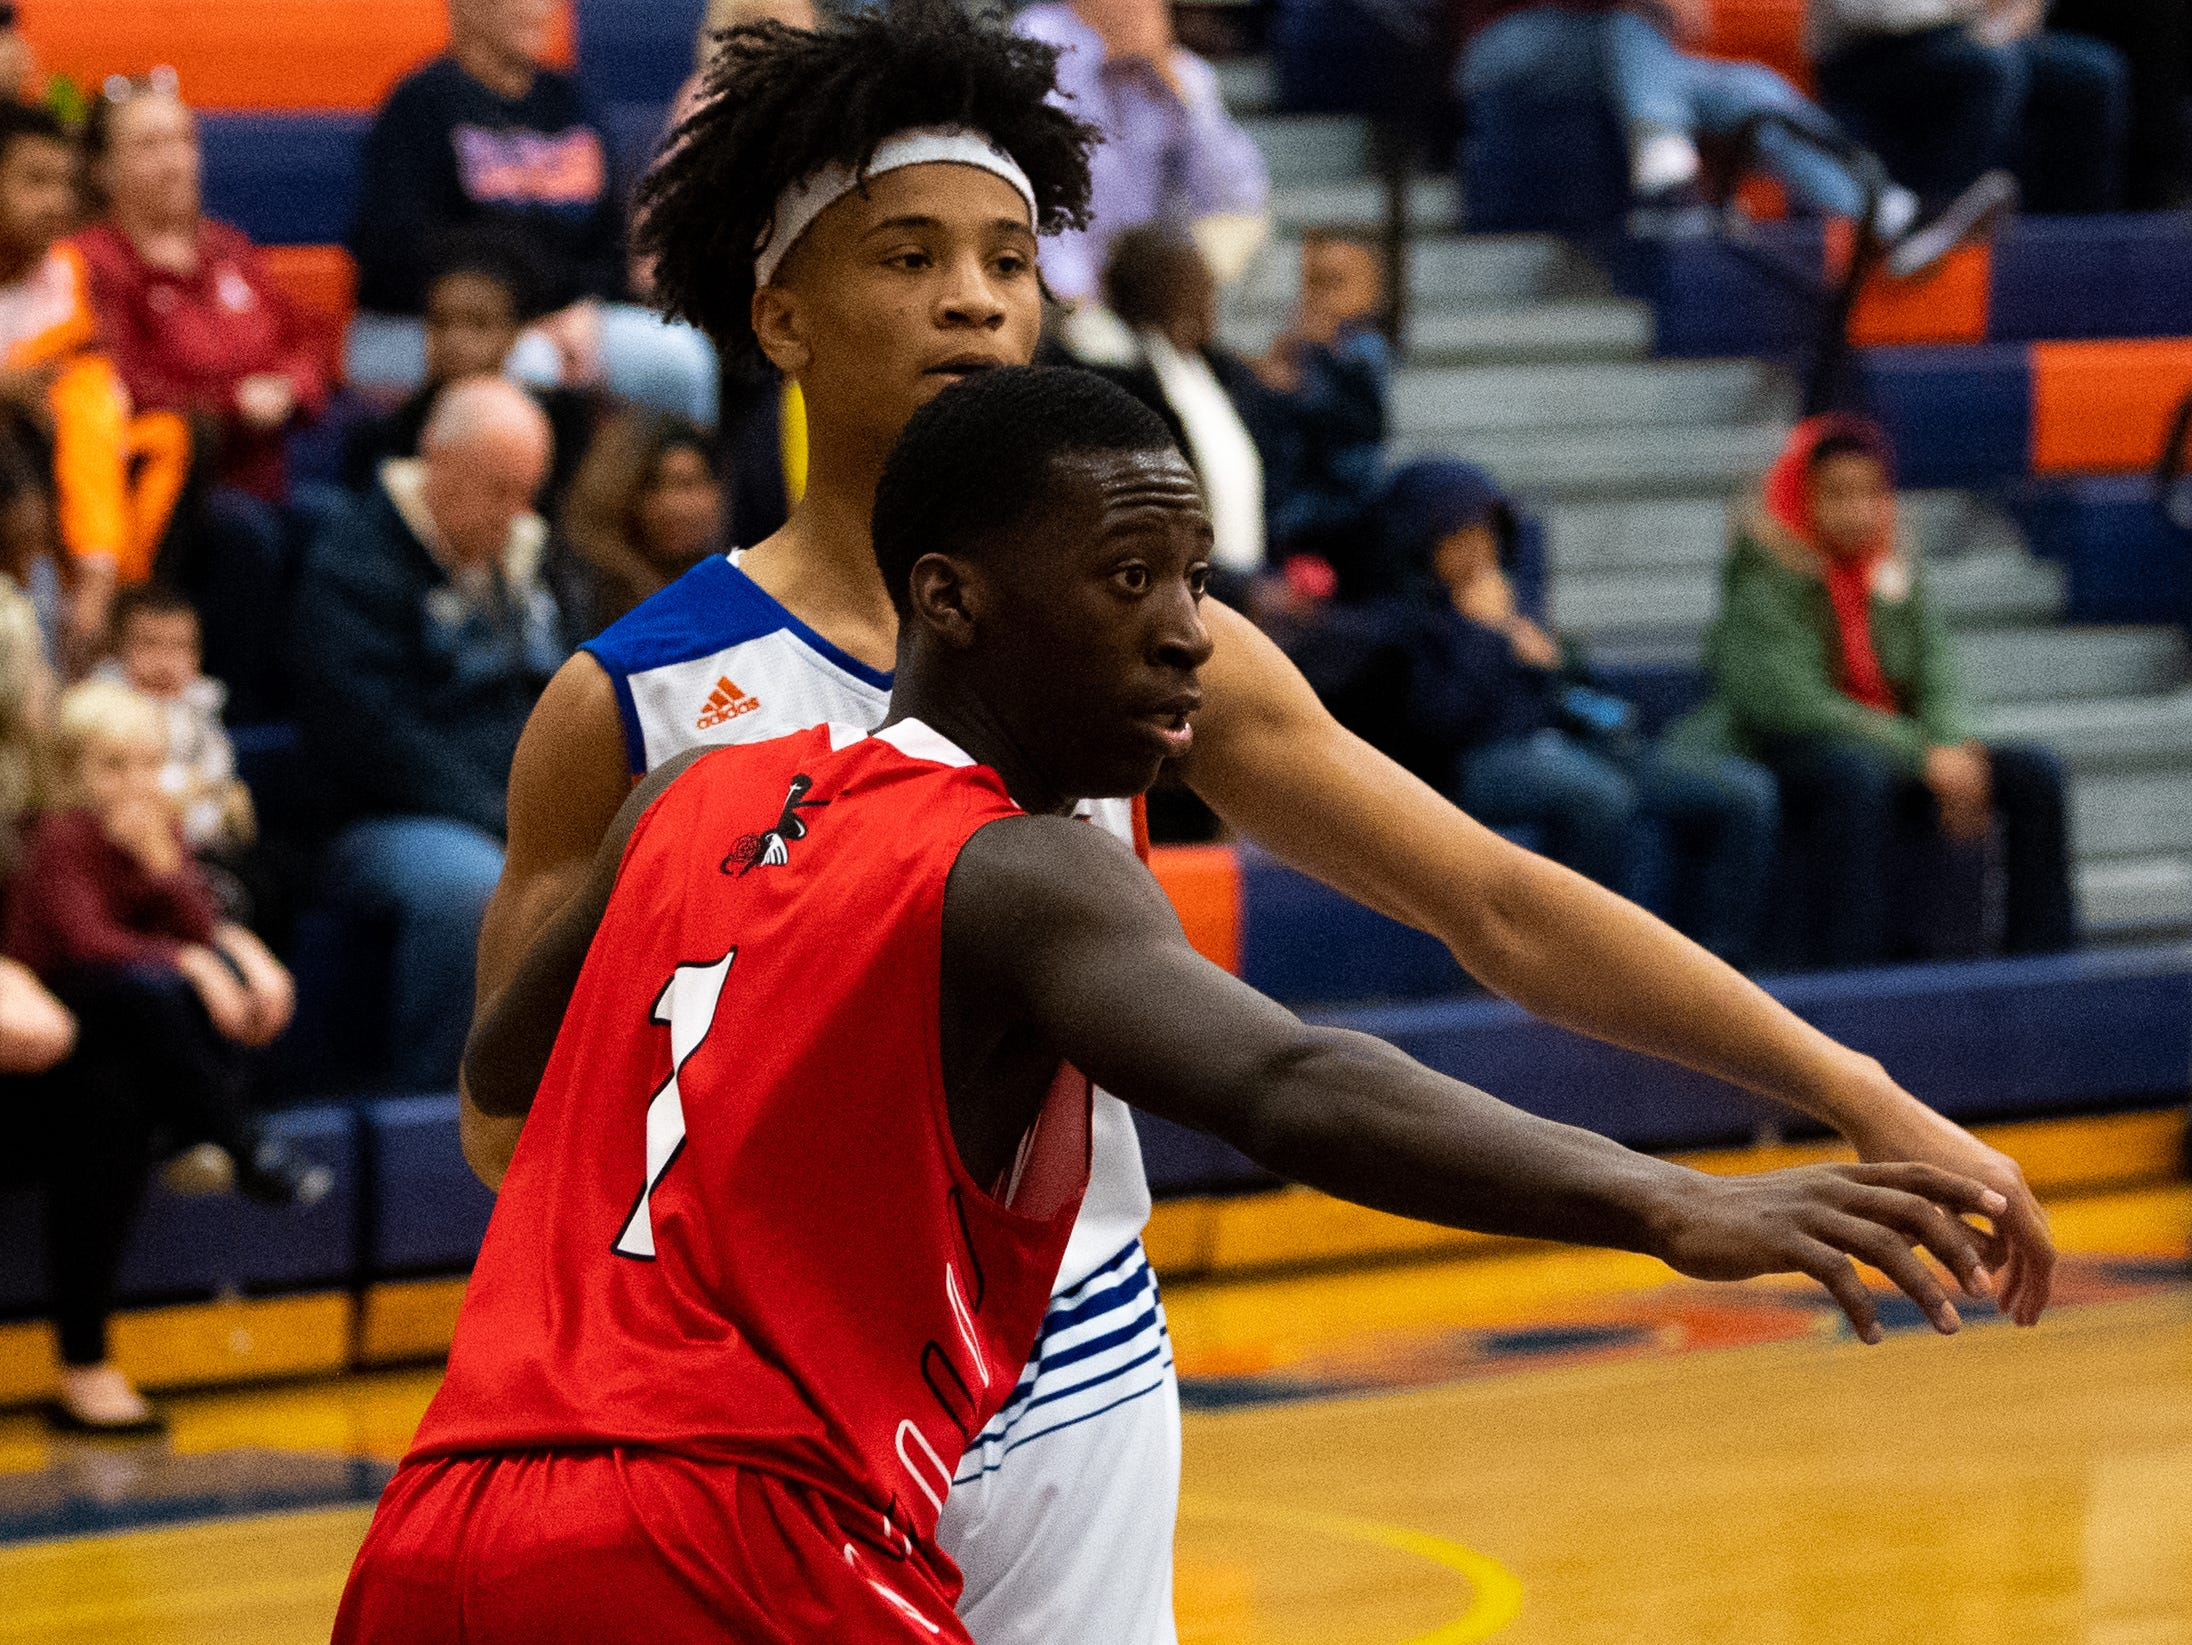 Ahmir Ellzy (1) plays tight defense during the Tip-Off Tournament championship game between York High and Williamsport at York High, Saturday, December 8, 2018. The Bearcats defeated the Millionaires 74-47.